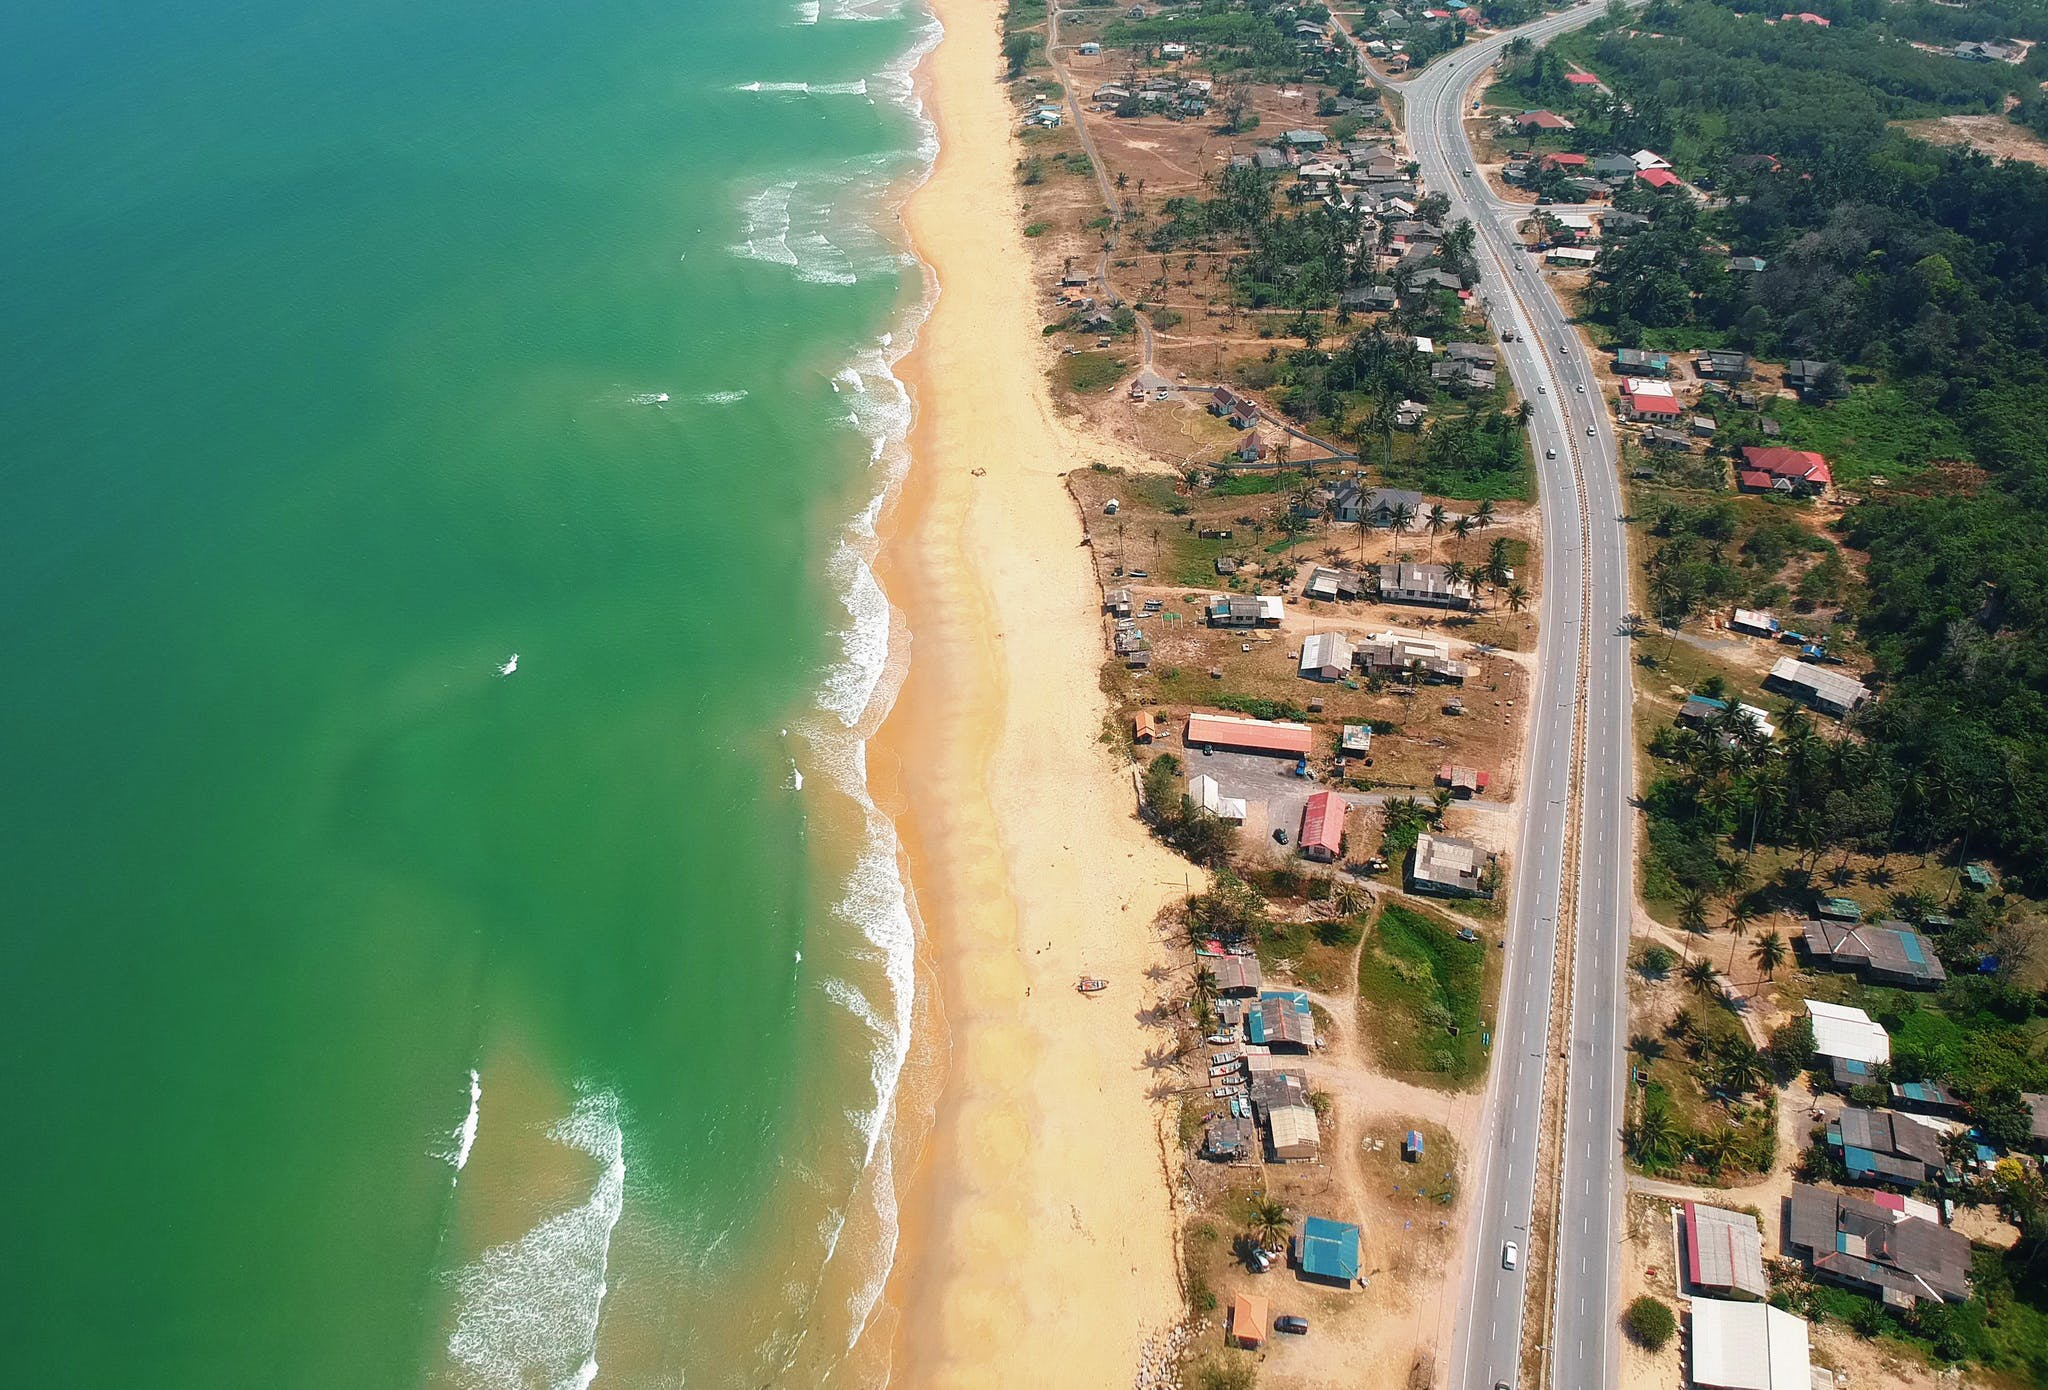 Top View of Blue Sea and Brown Sand